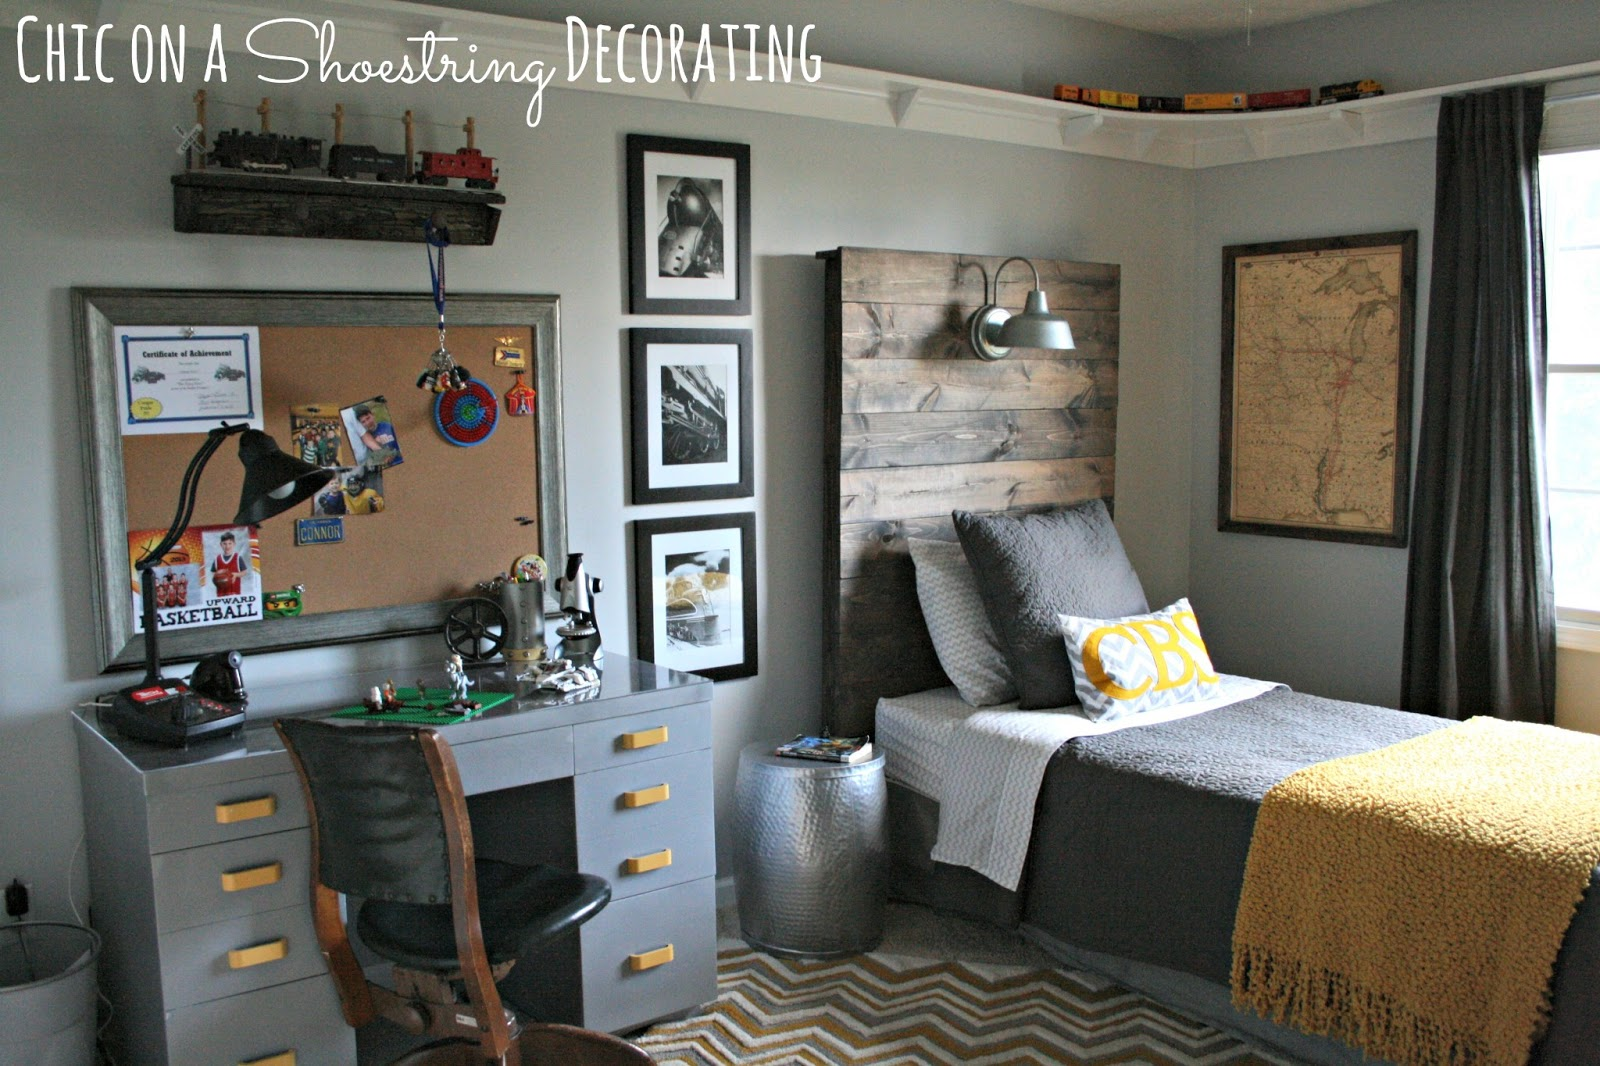 Chic on a shoestring decorating bigger boy room reveal Boys room decor